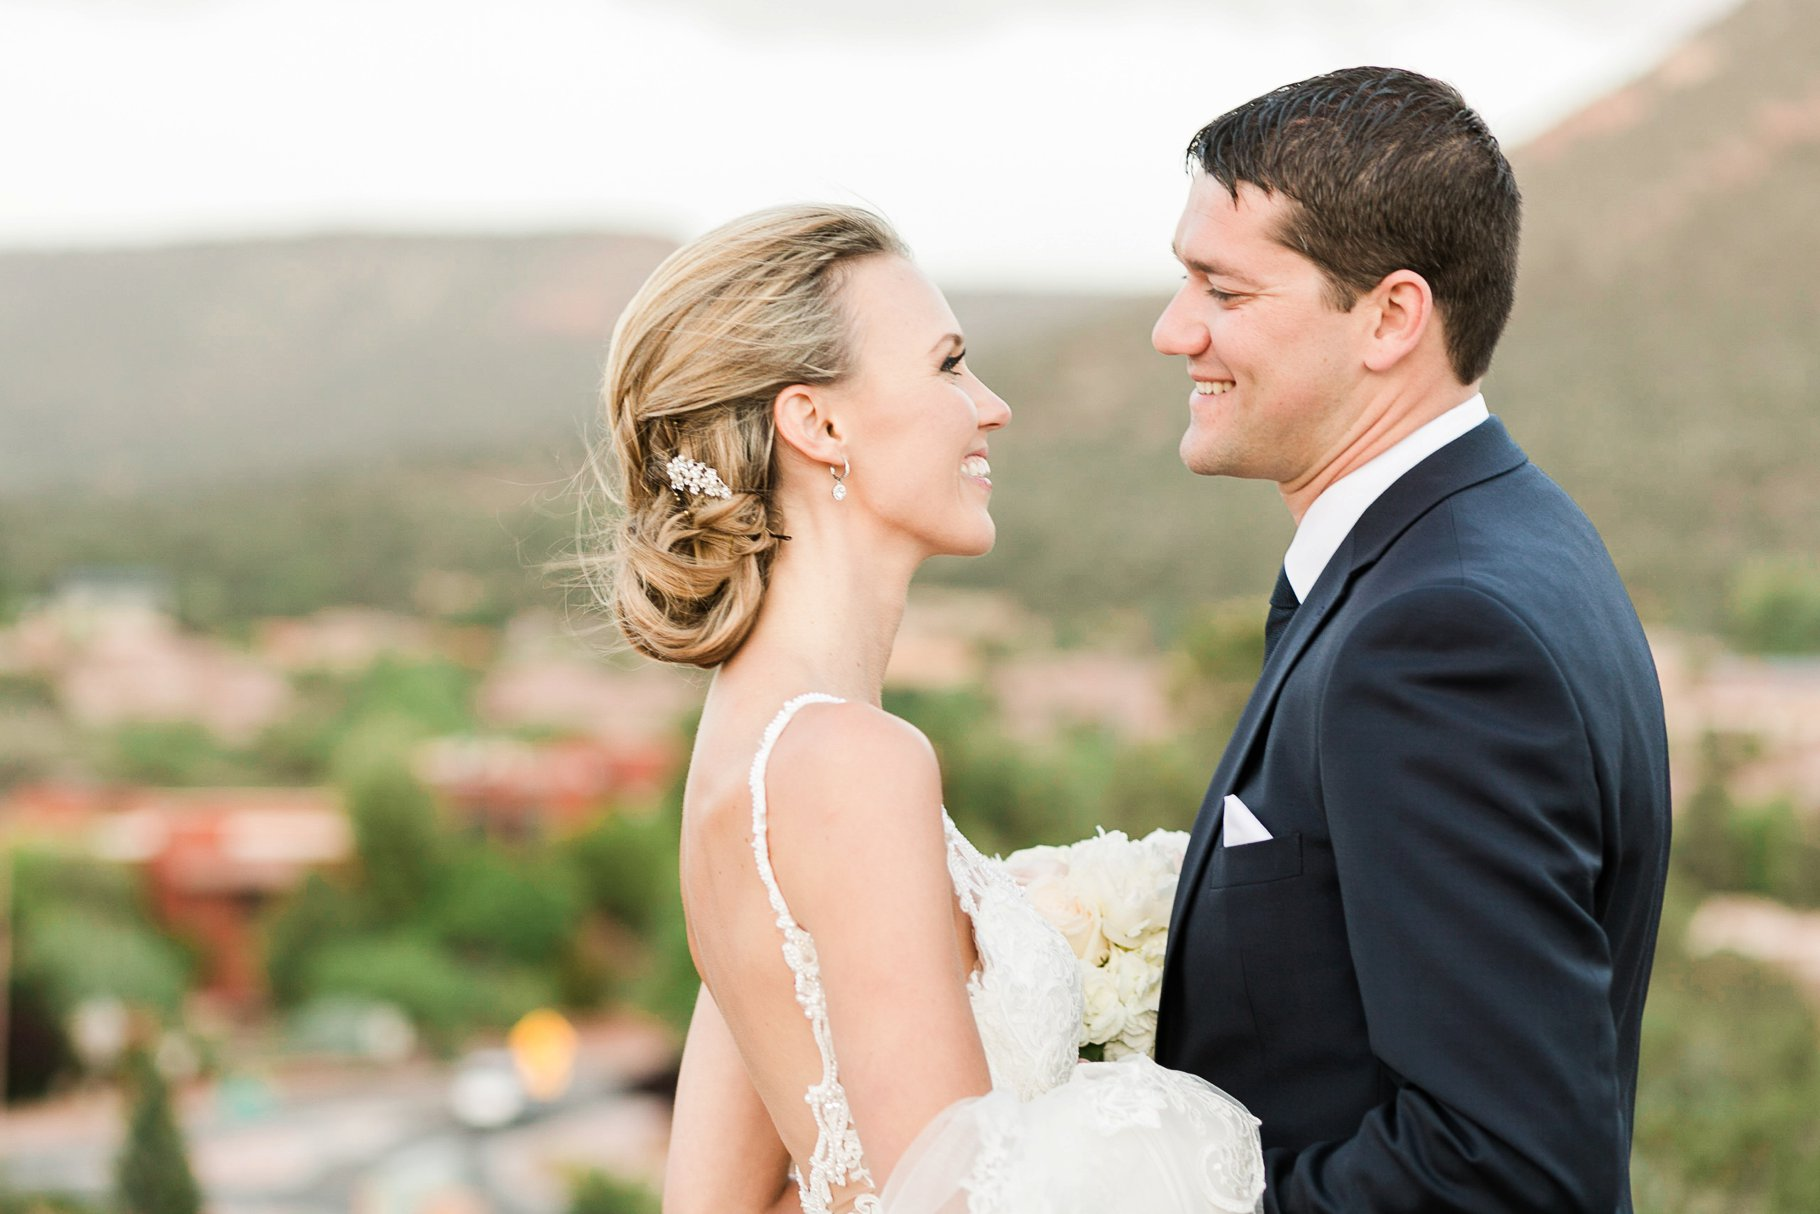 sedona wedding-120_GRETCHEN WAKEMAN PHOTOGRAPHY.jpg